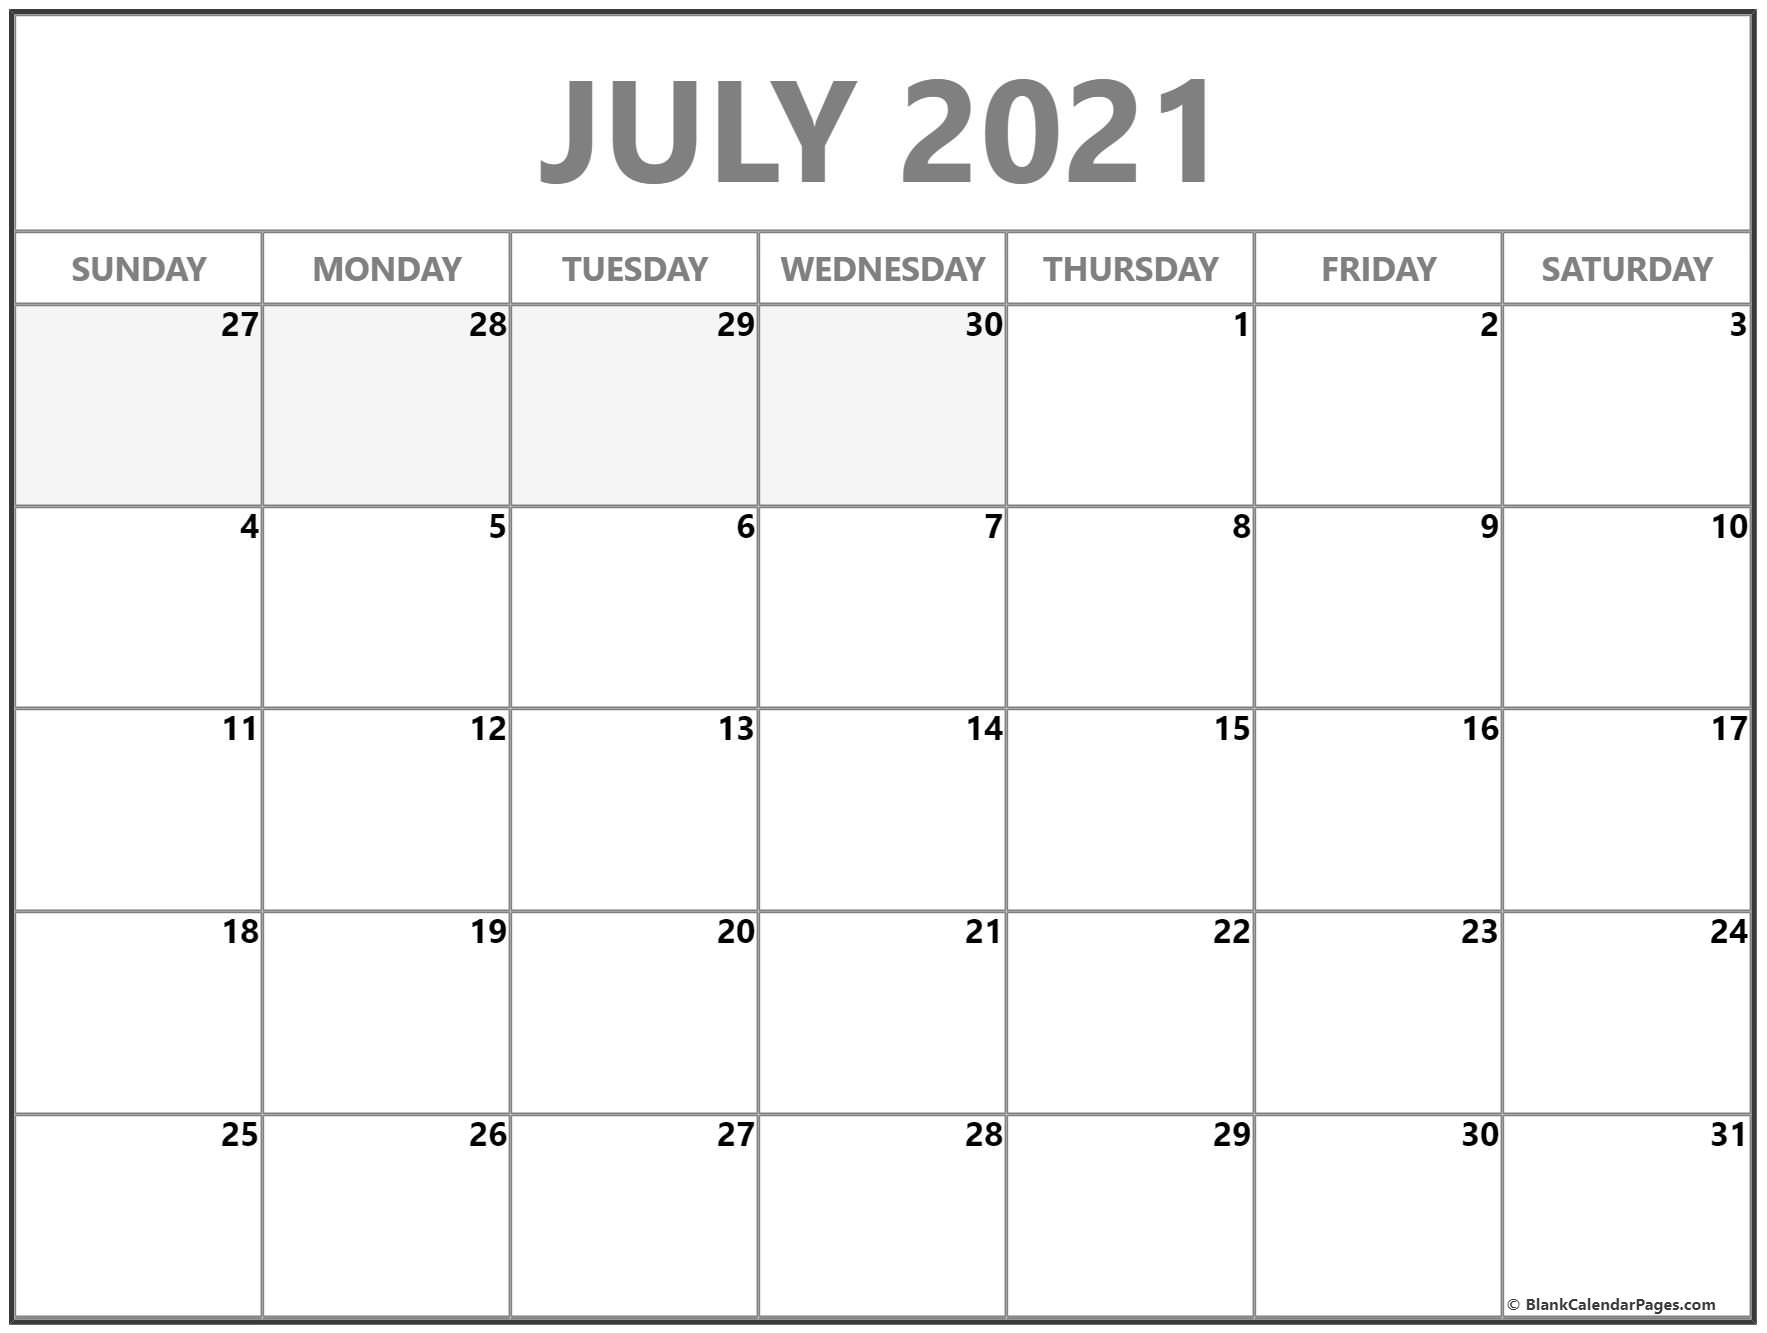 Print Free 2021 Monthly Calendar Without Downloading in Print Free July 2021 Calendar Without Downloading